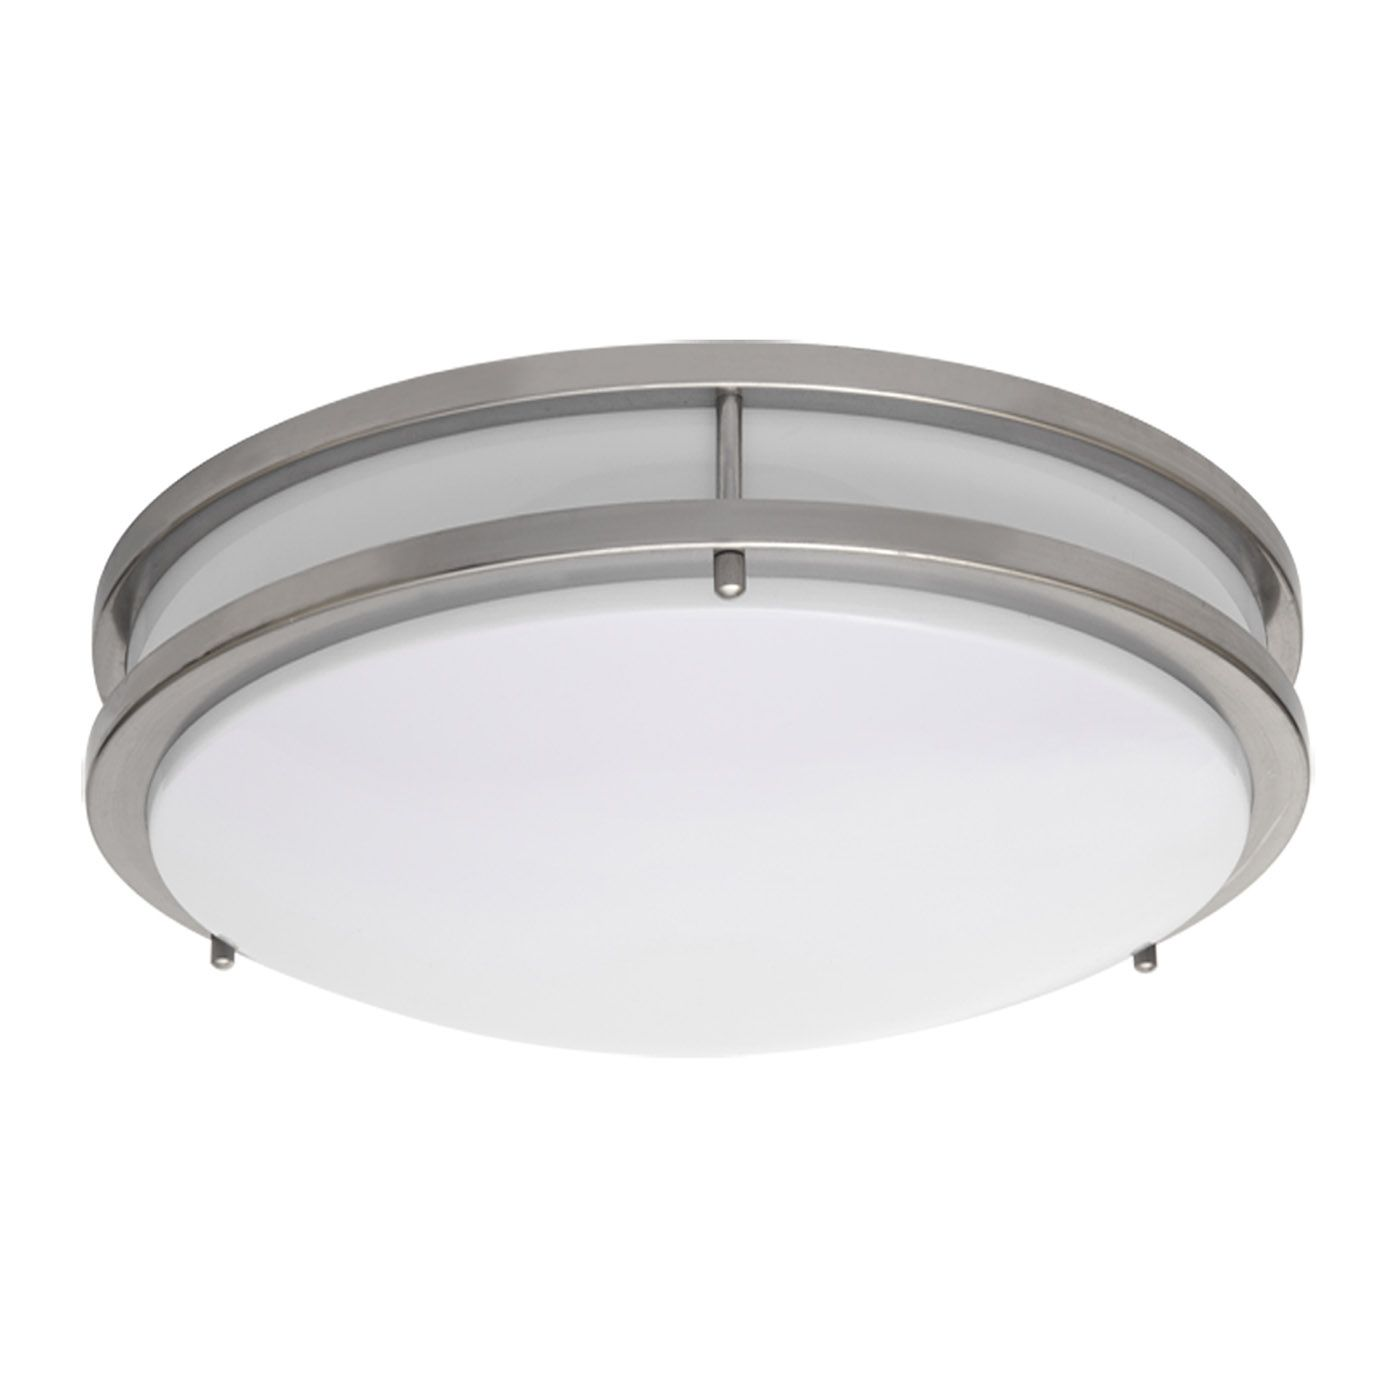 lighting fixture. Amax Lighting LED Ceiling Fixtures LED-JR00 Two Ring Flush Mount Fixture |